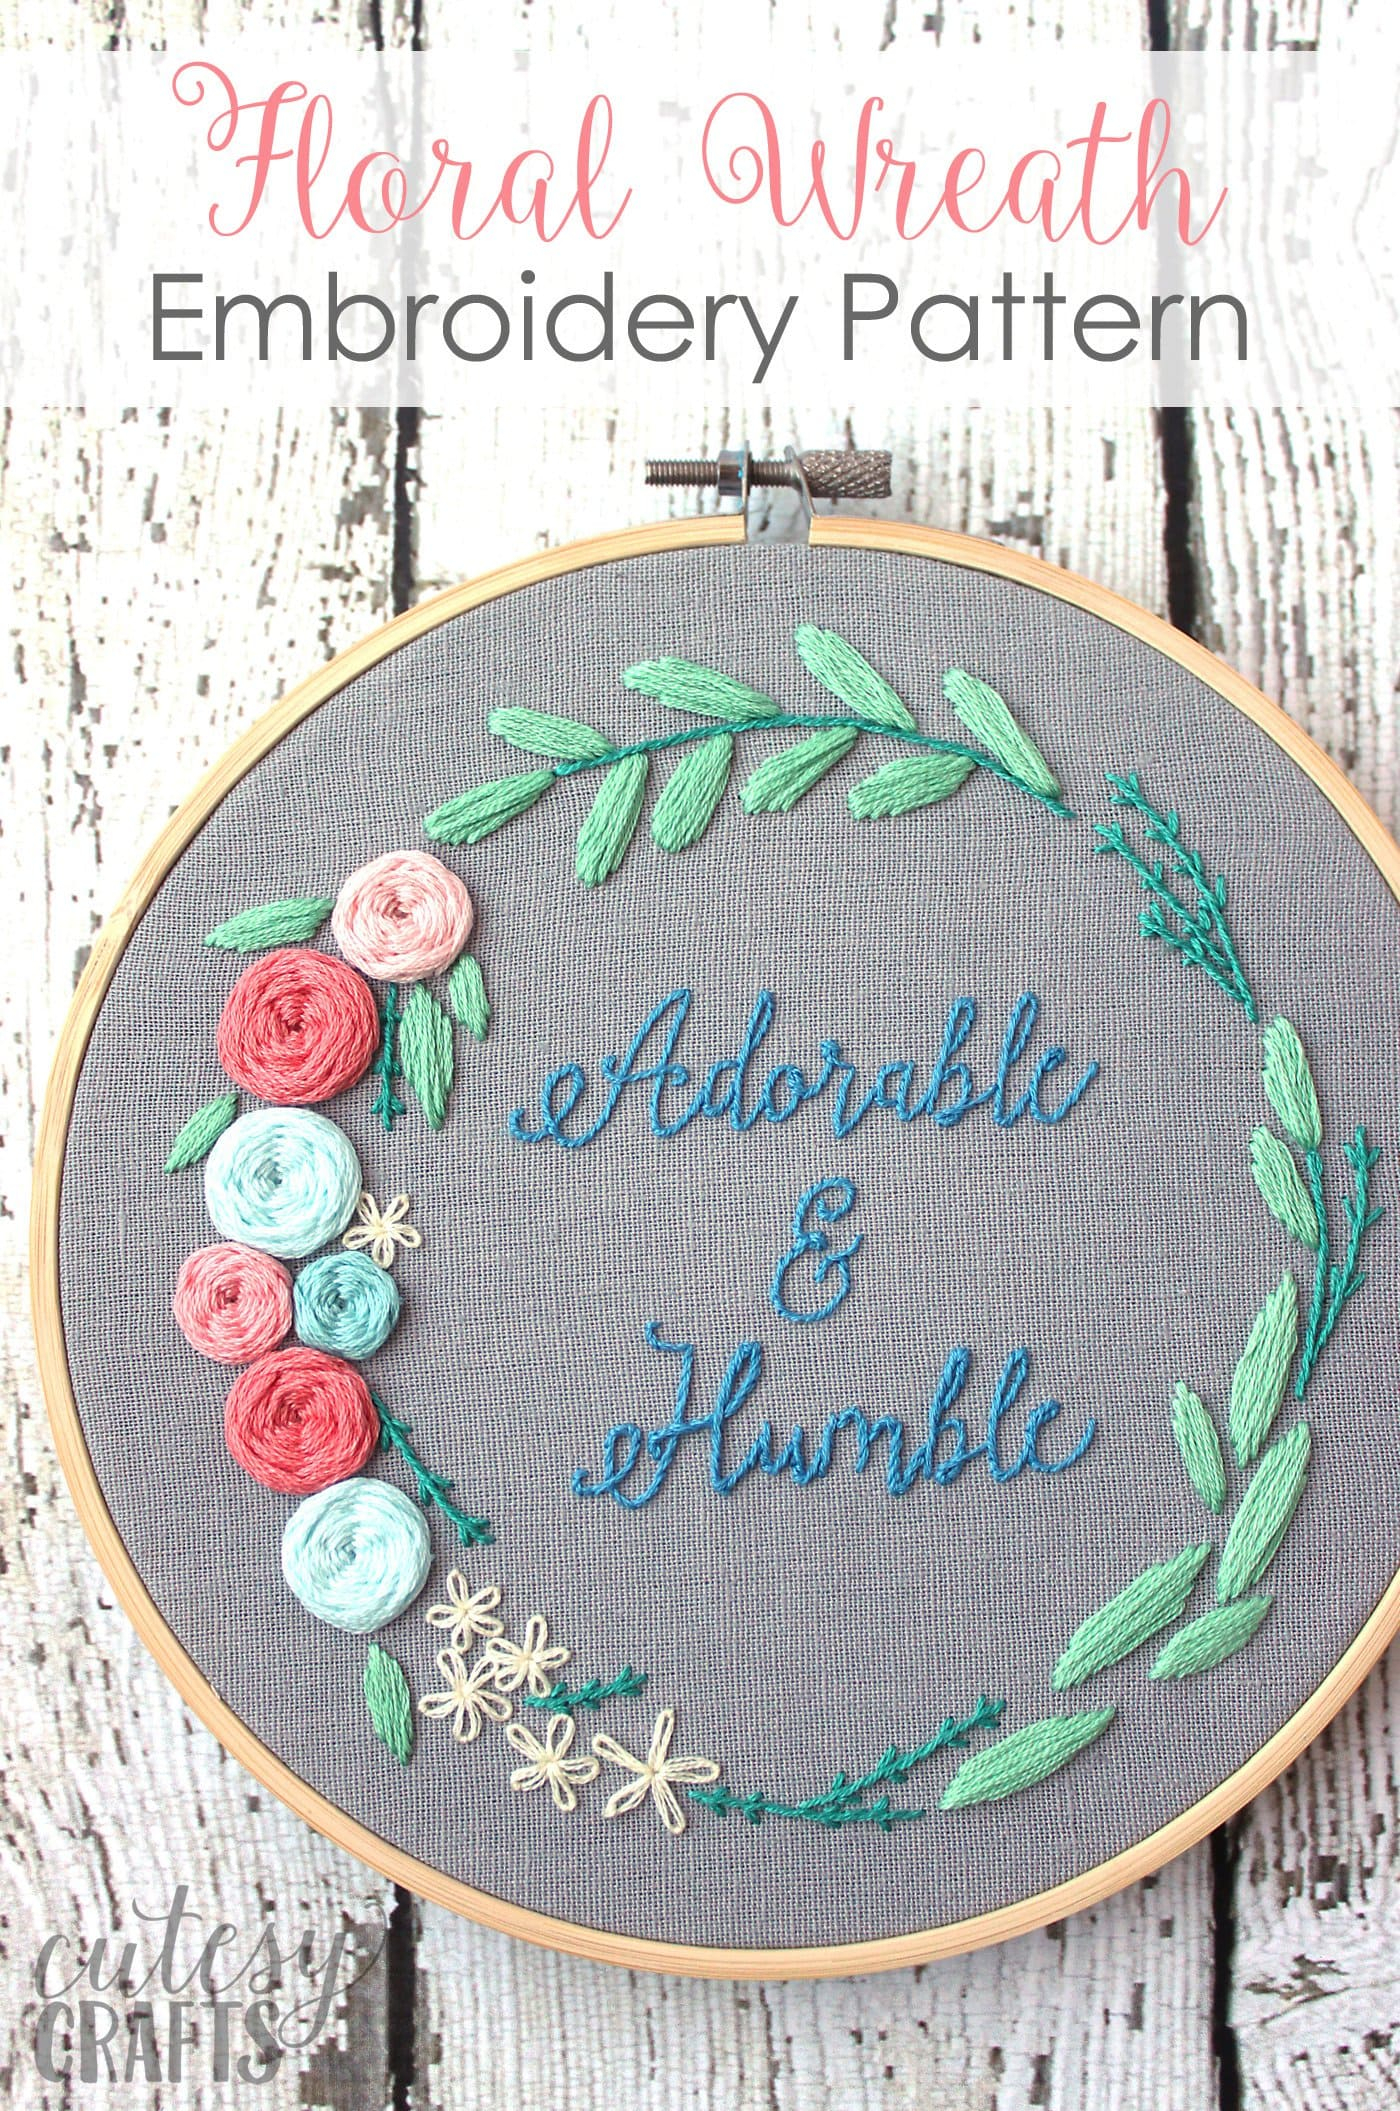 Embroidery For Beginners Free Patterns Adorable And Humble Free Floral Wreath Hand Embroidery Pattern